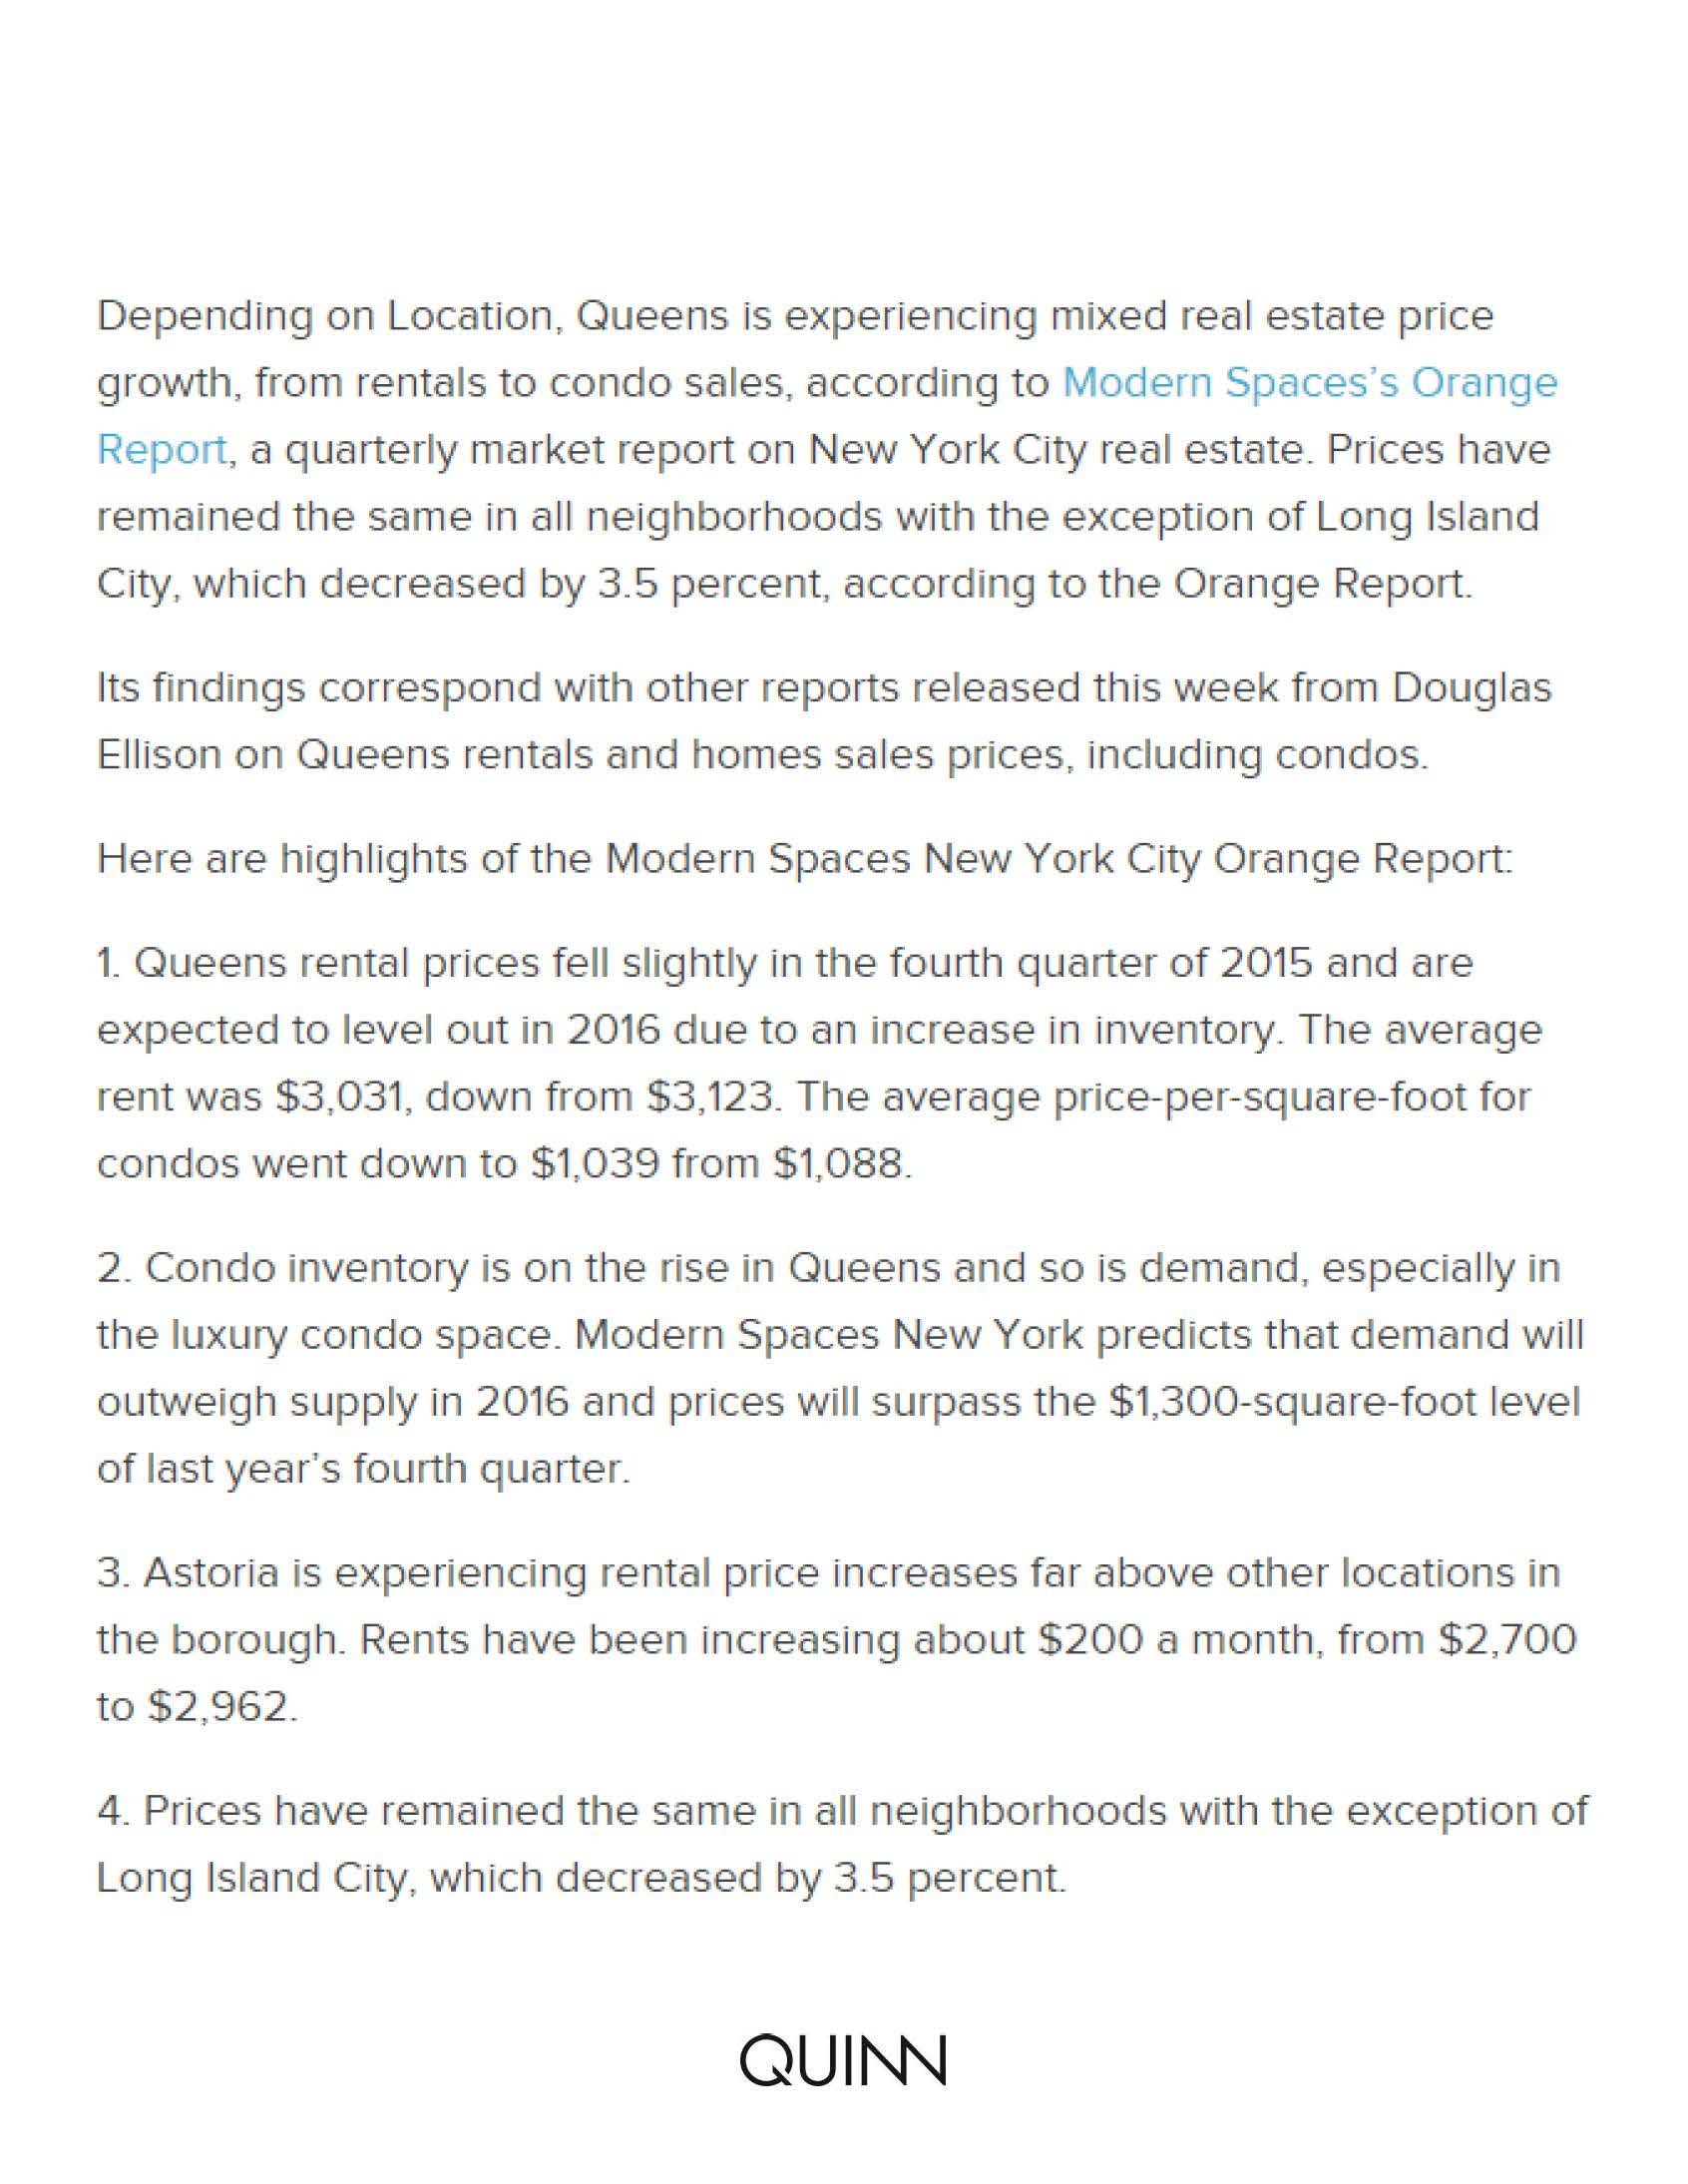 Inman - Queens experiencing mixed growth, from rentals to condo sales 1...._Page_2